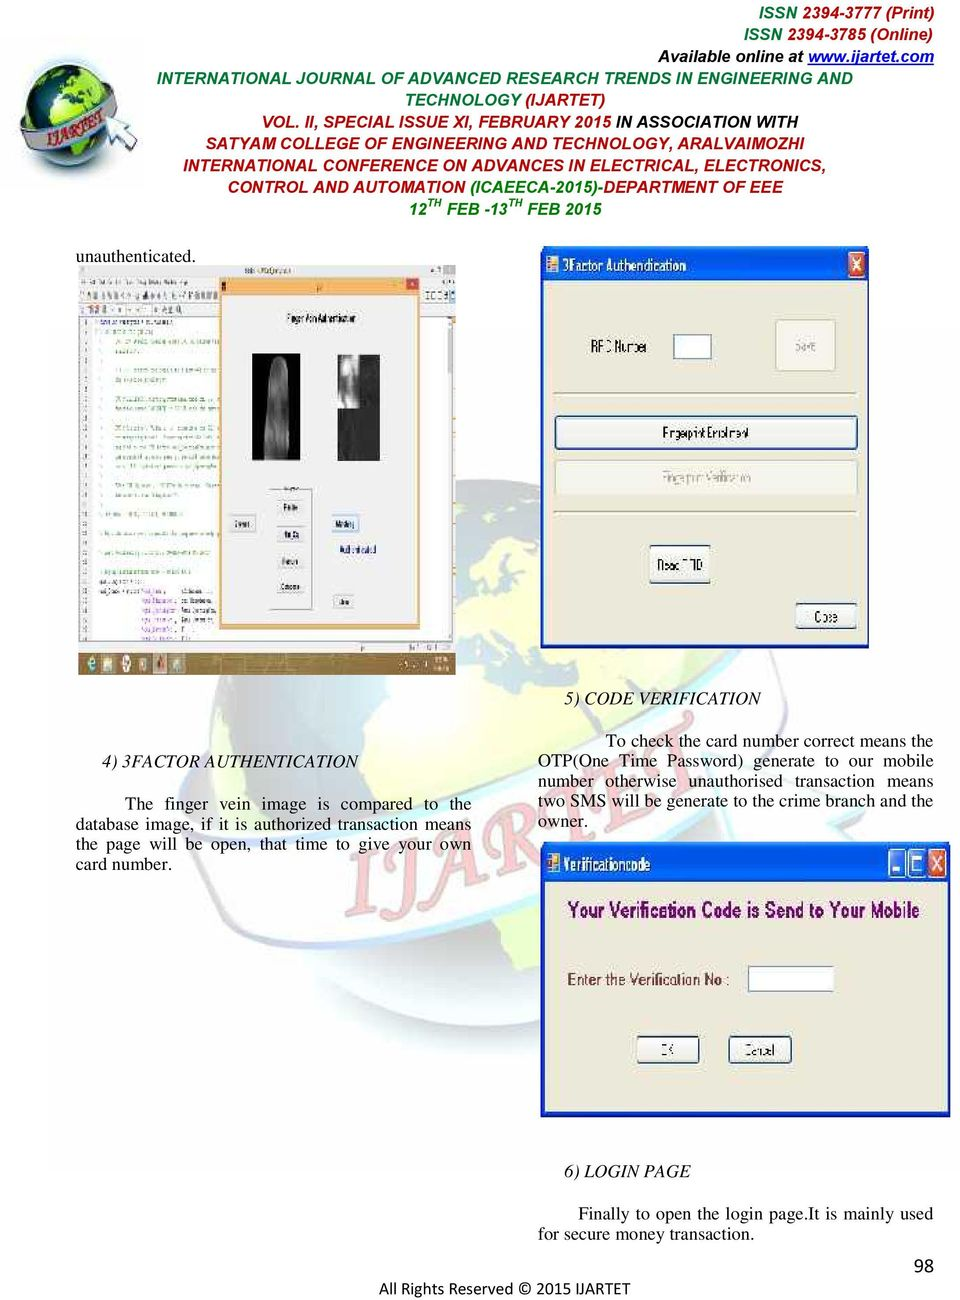 is authorized transaction means the page will be open, that time to give your own card number.